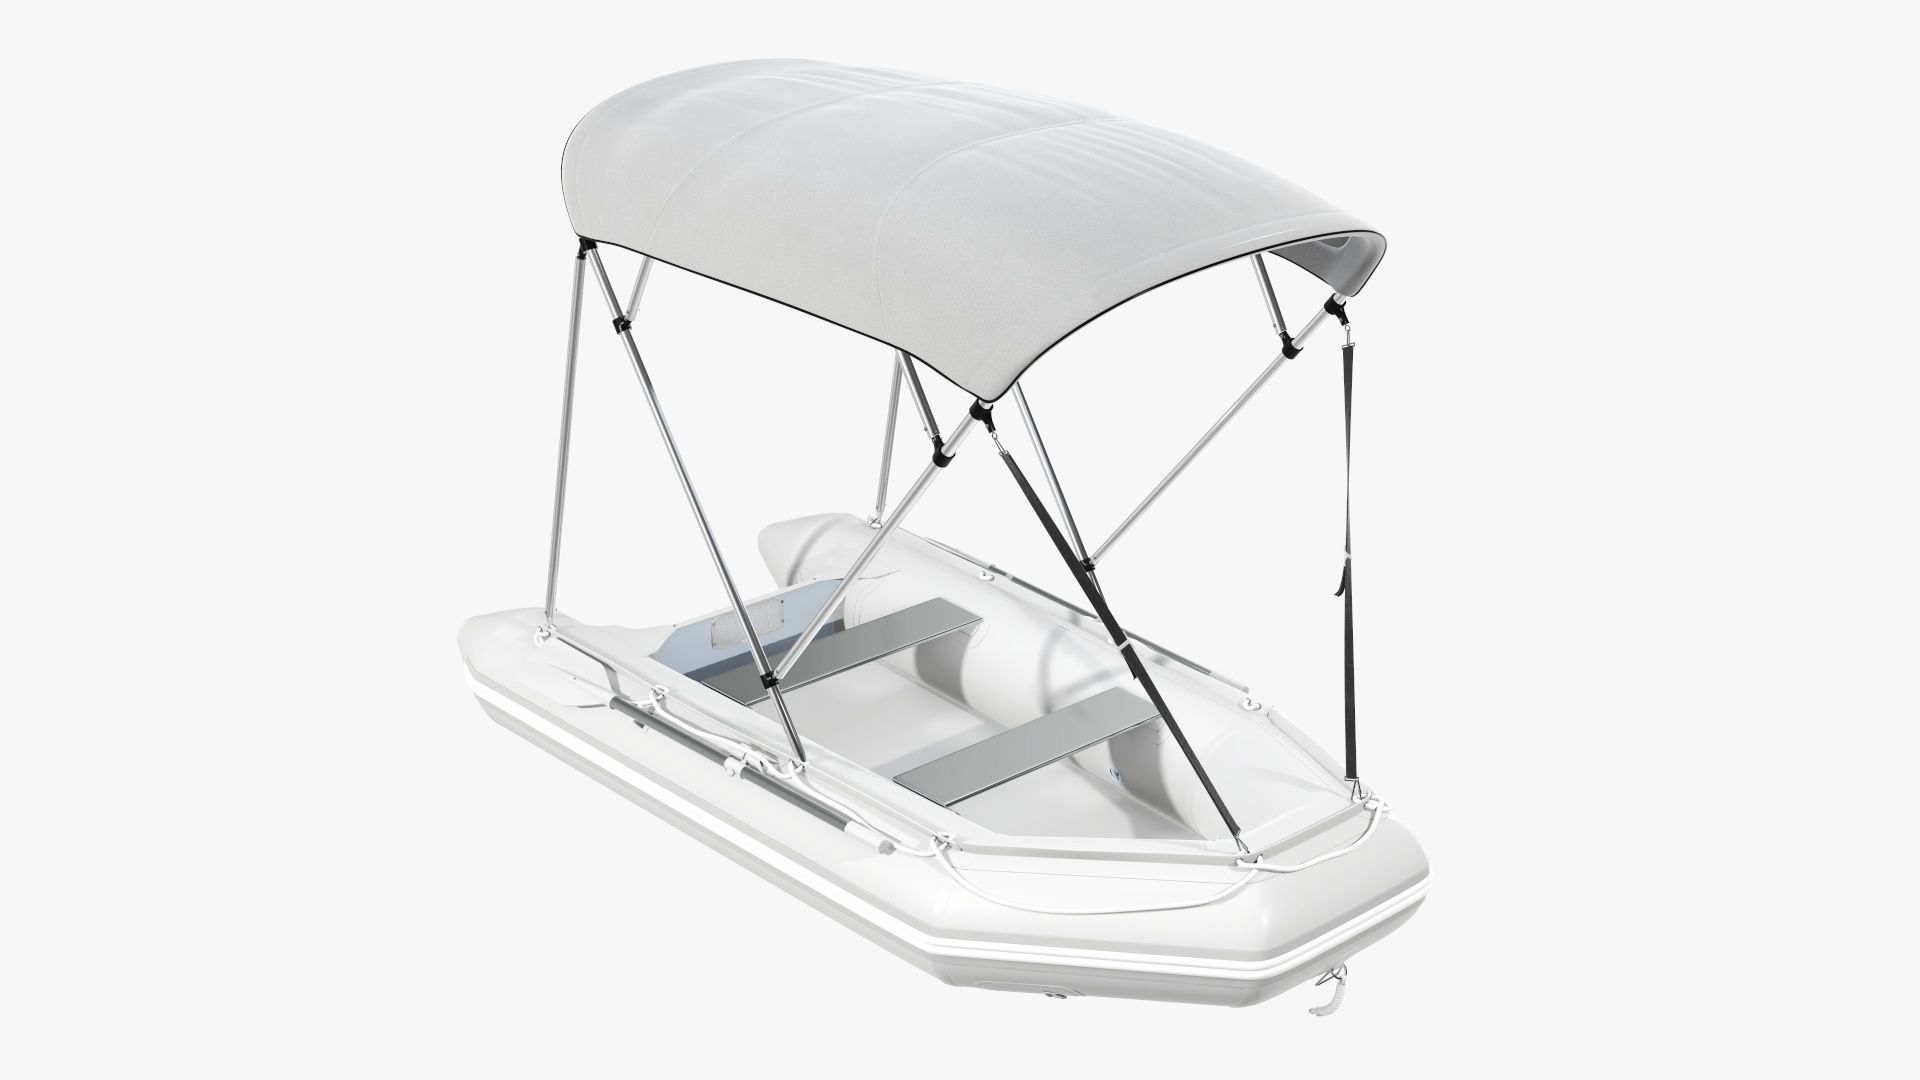 Boat inflatable 03 sunshade